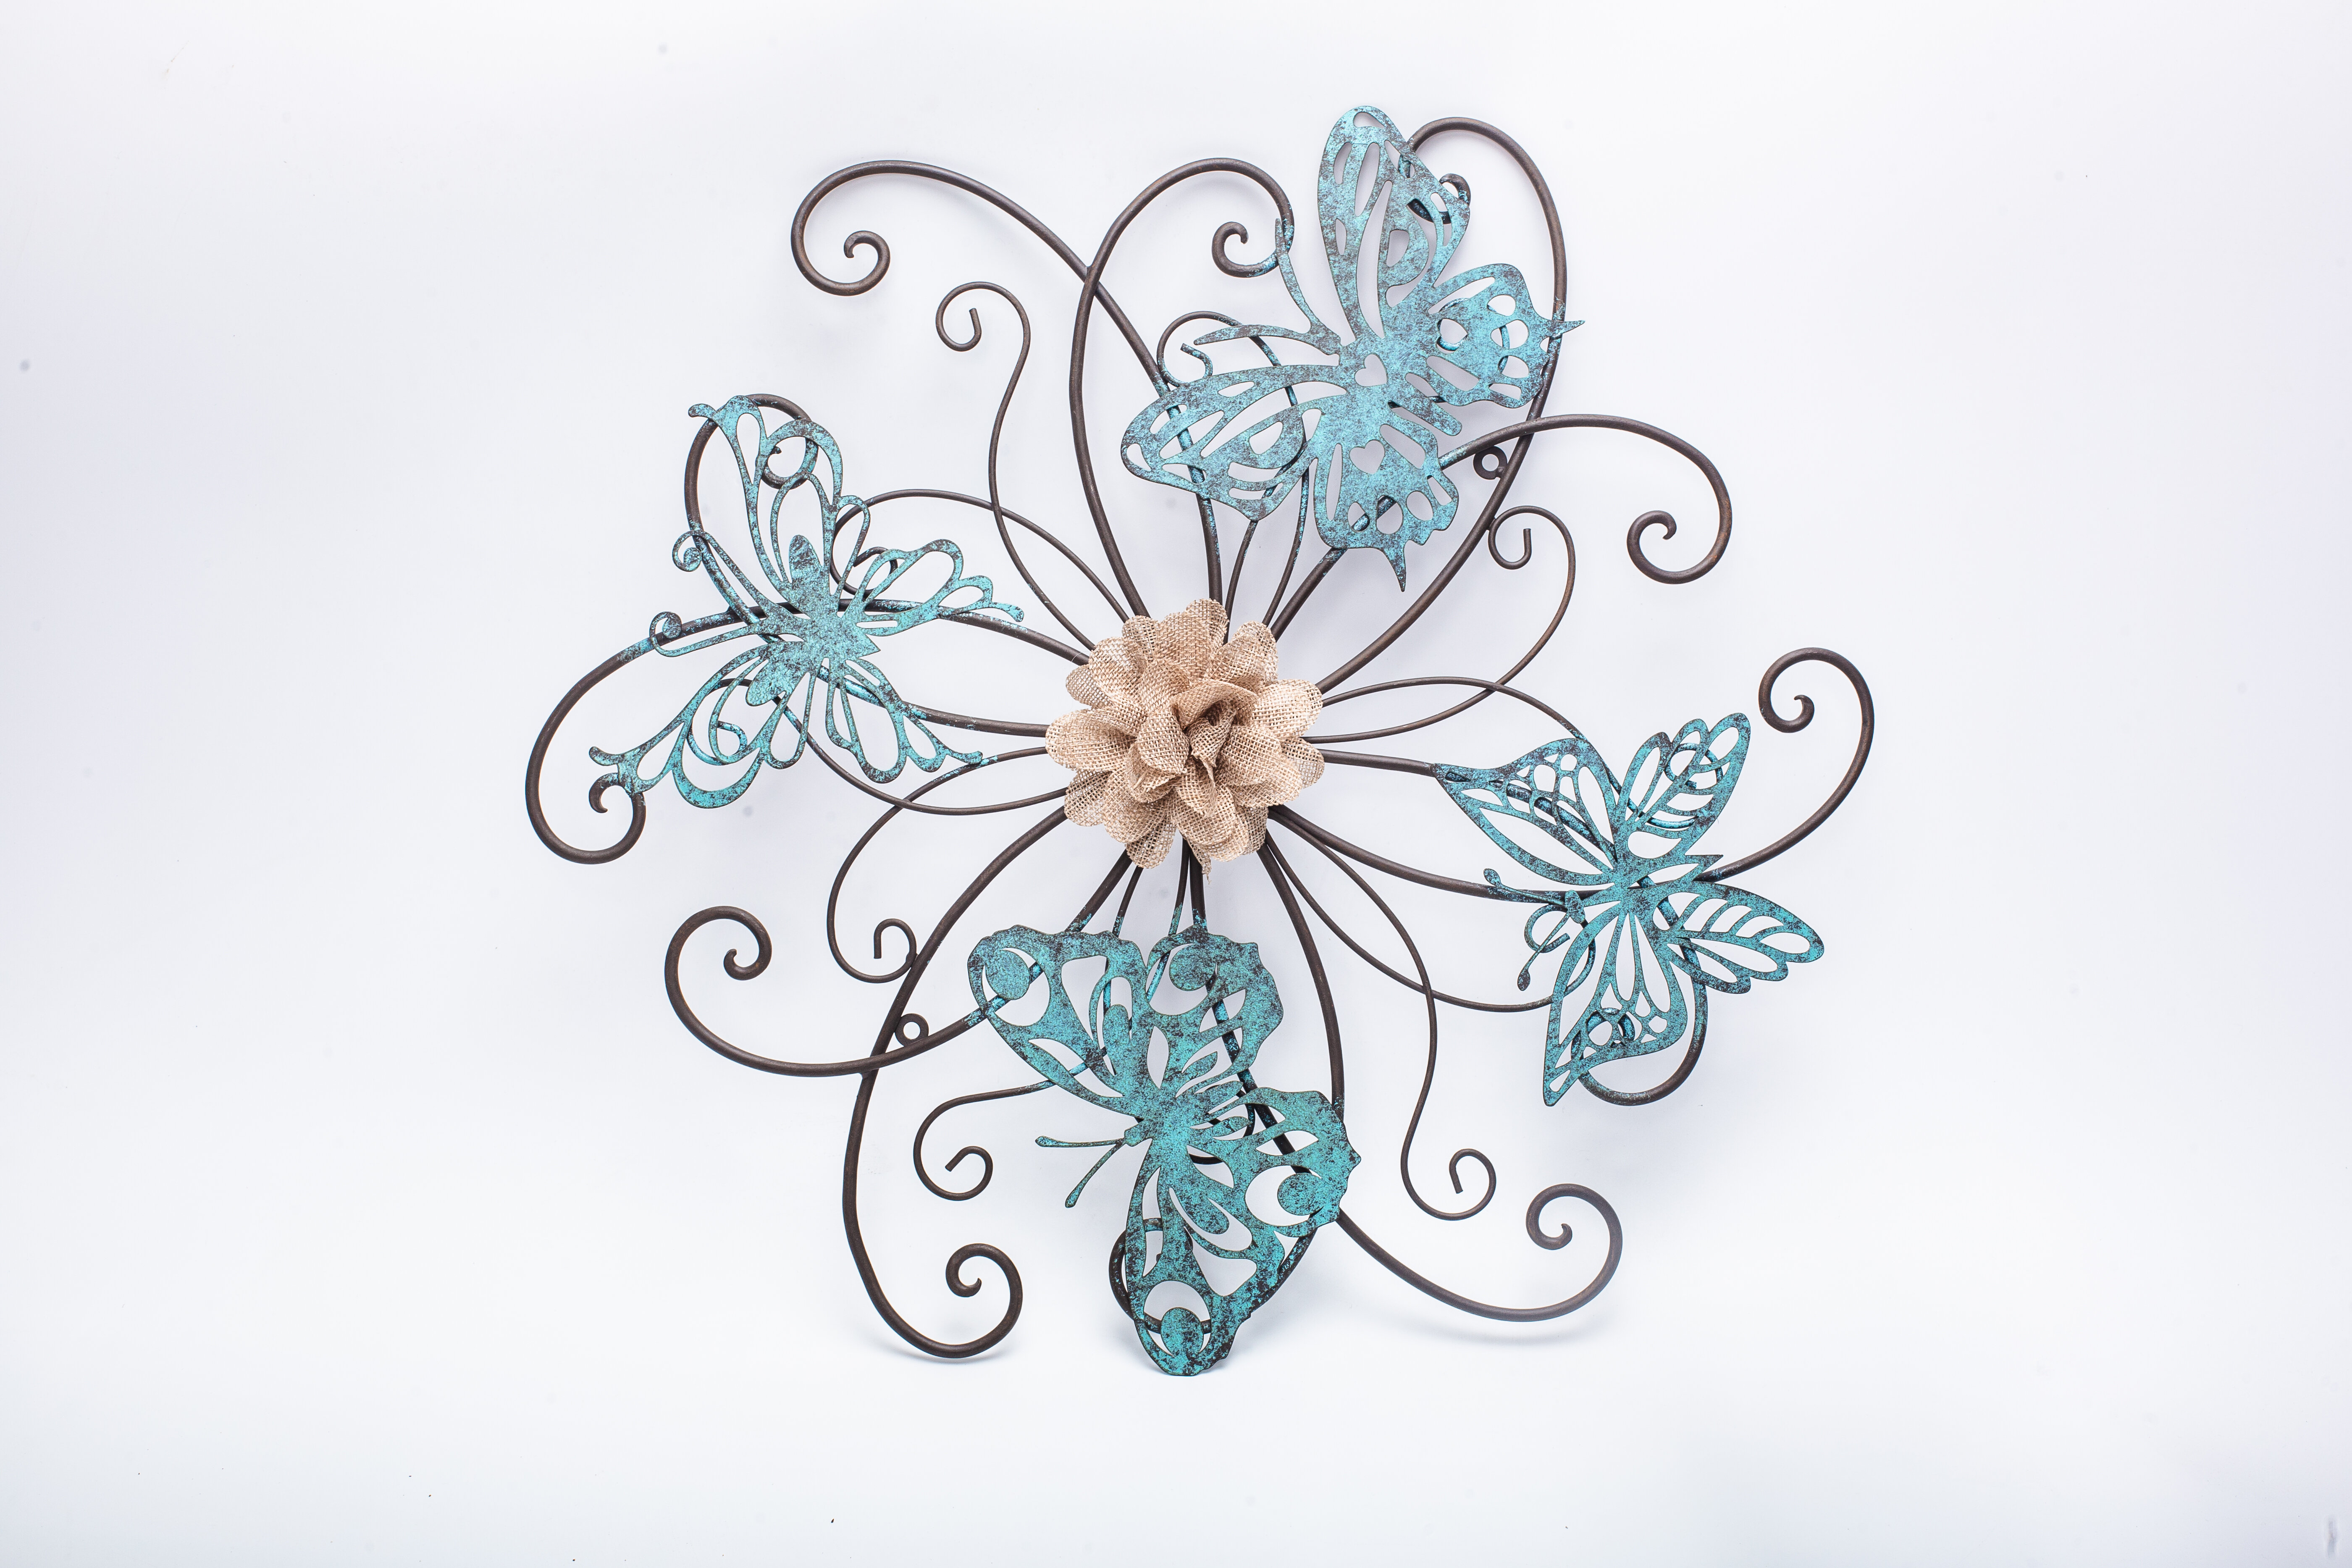 Adecotrading Flower And Butterfly Urban Design Metal Wall Décor Intended For Most Recently Released Raheem Flowers Metal Wall Decor By Alcott Hill (View 11 of 20)